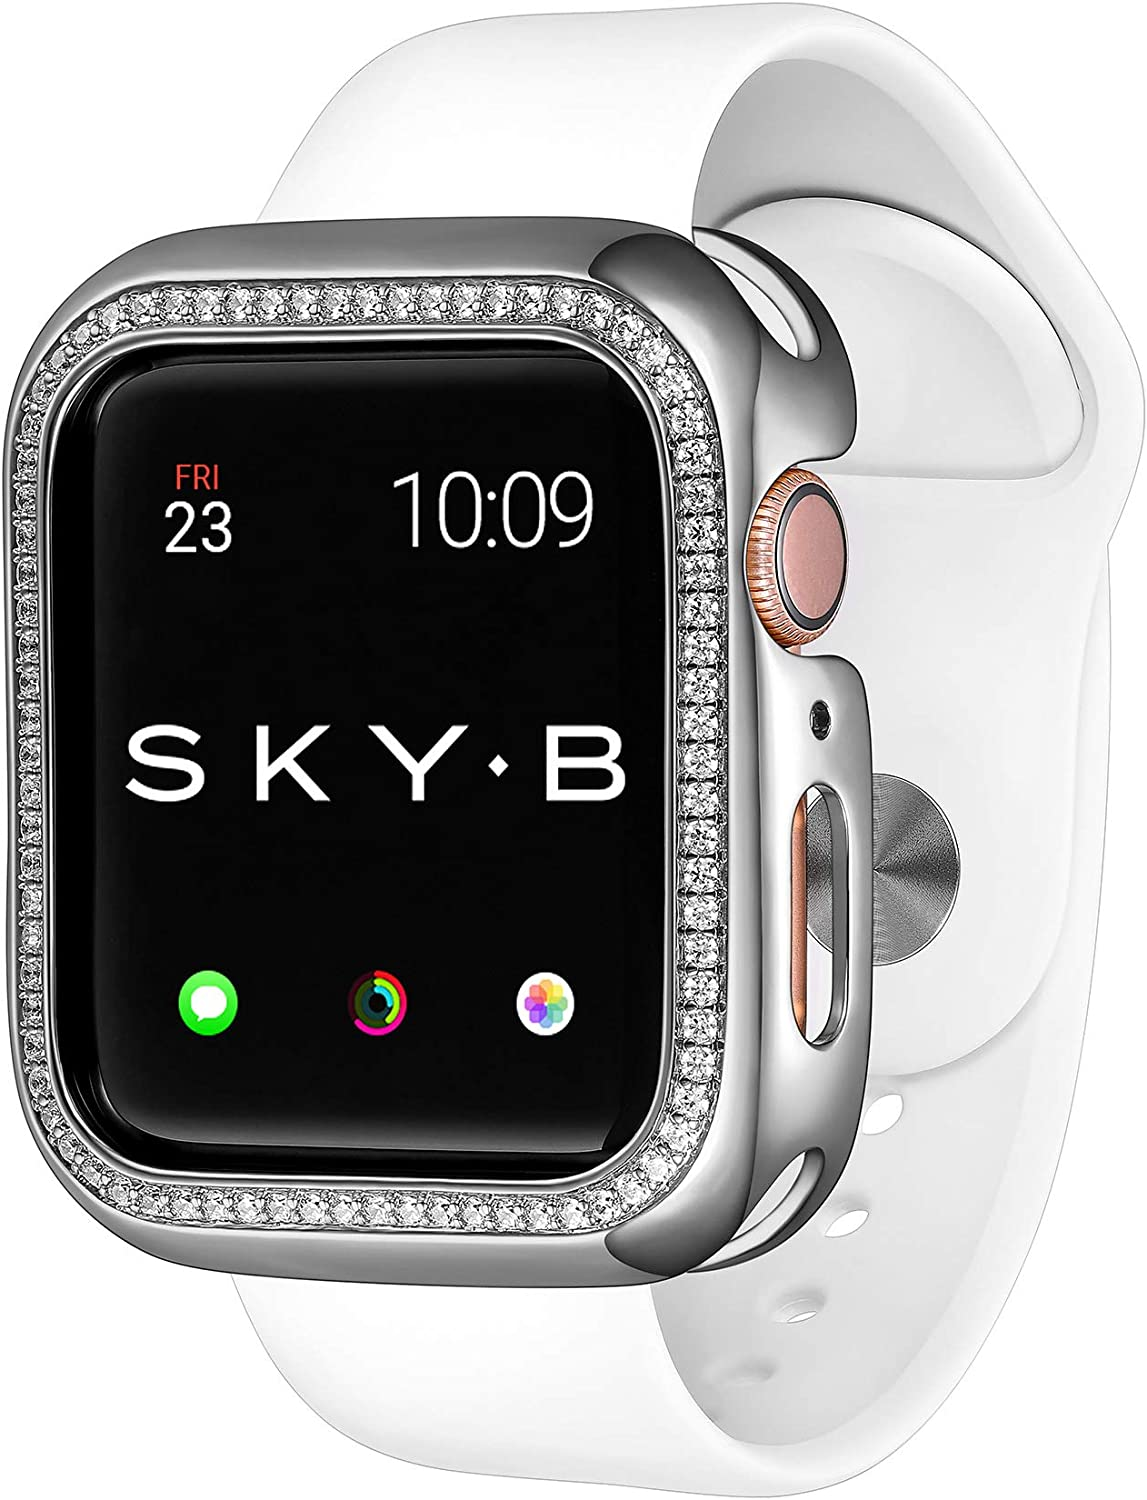 SKYB Halo Protective Jewelry Case for Apple Watch Series 1, 2, 3, 4, 5, 6, SE Devices - Silver Color for 44mm Apple Watch